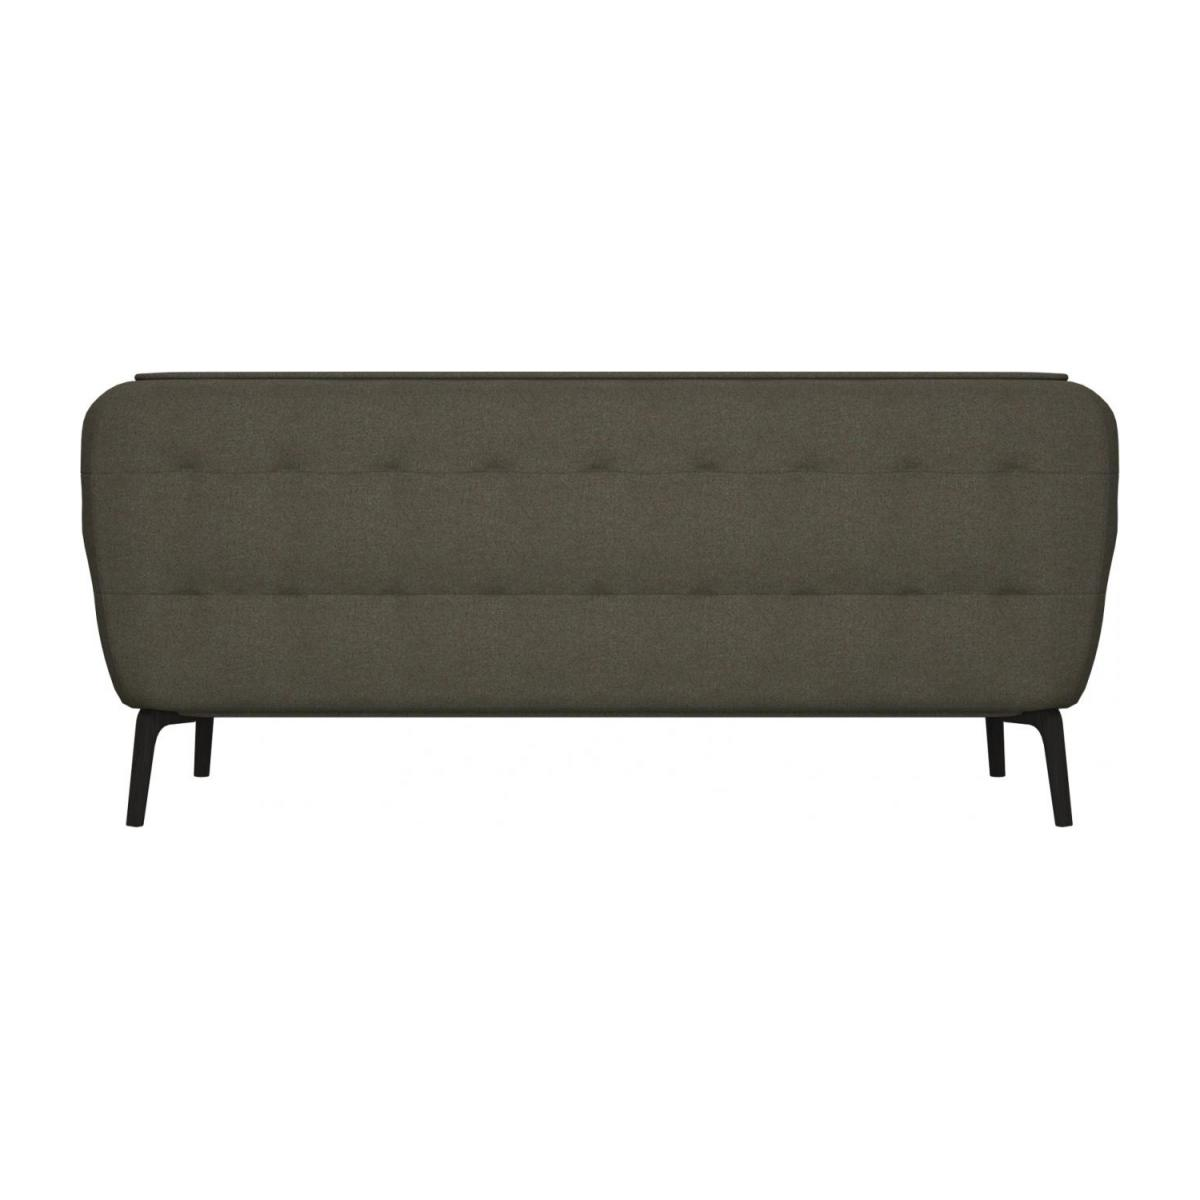 2 seater sofa in Lecce fabric, muscat and dark feet n°3